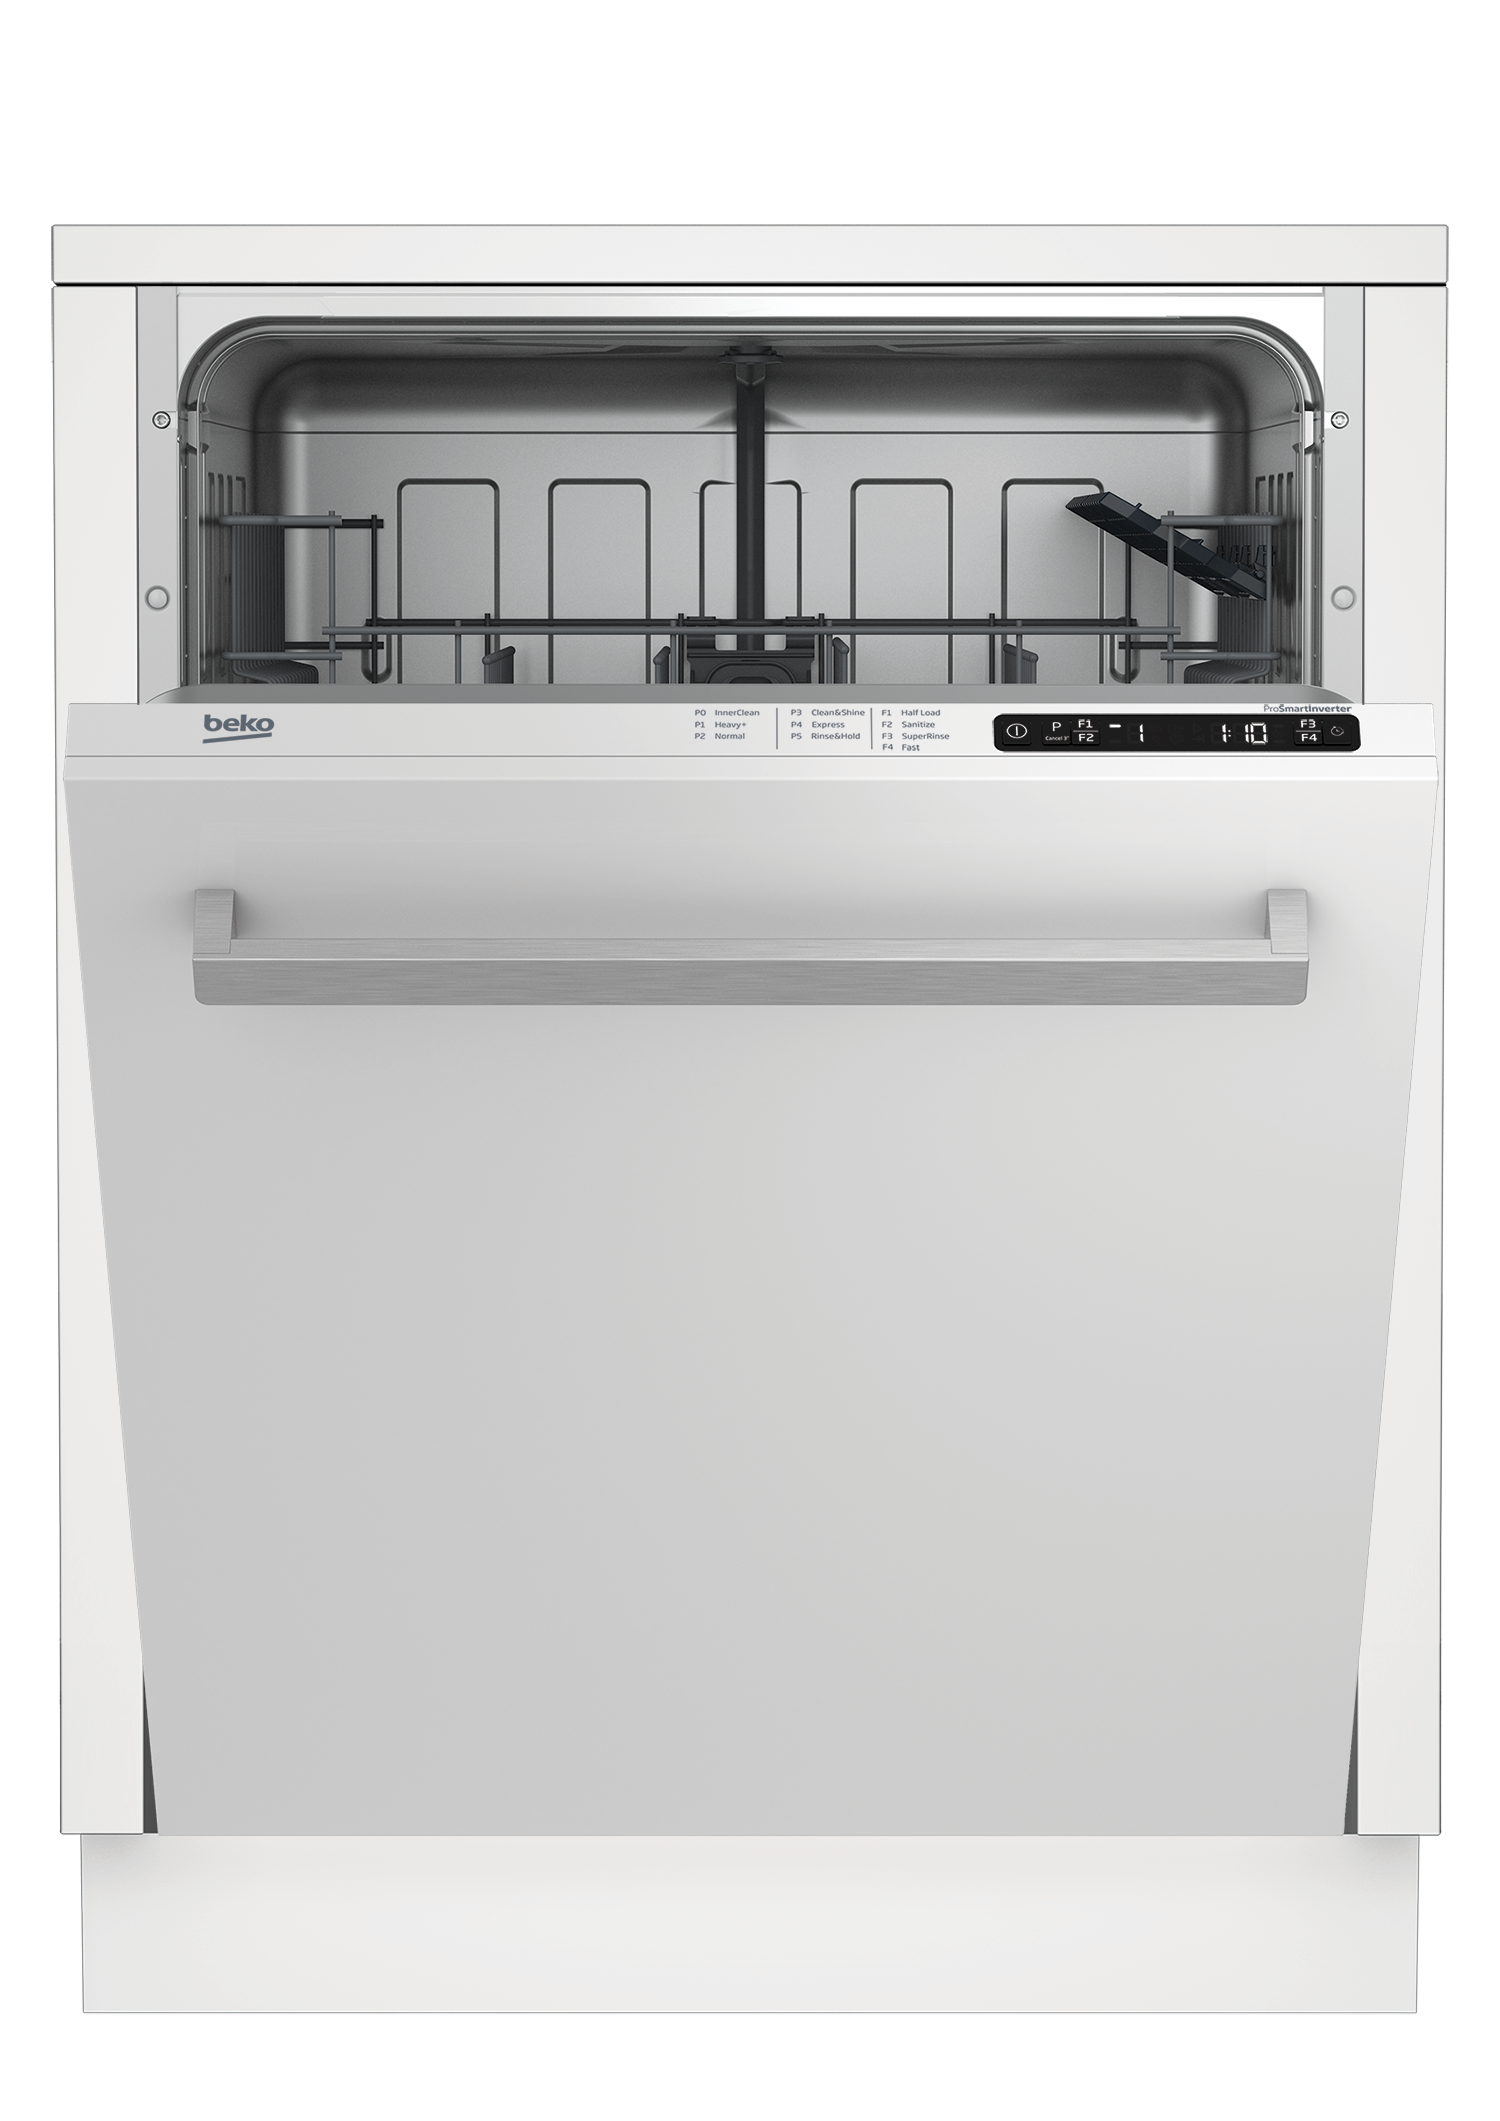 Tall Tub White Dishwasher, 14 place settings, 48 dBA, Top Control DDT25400W